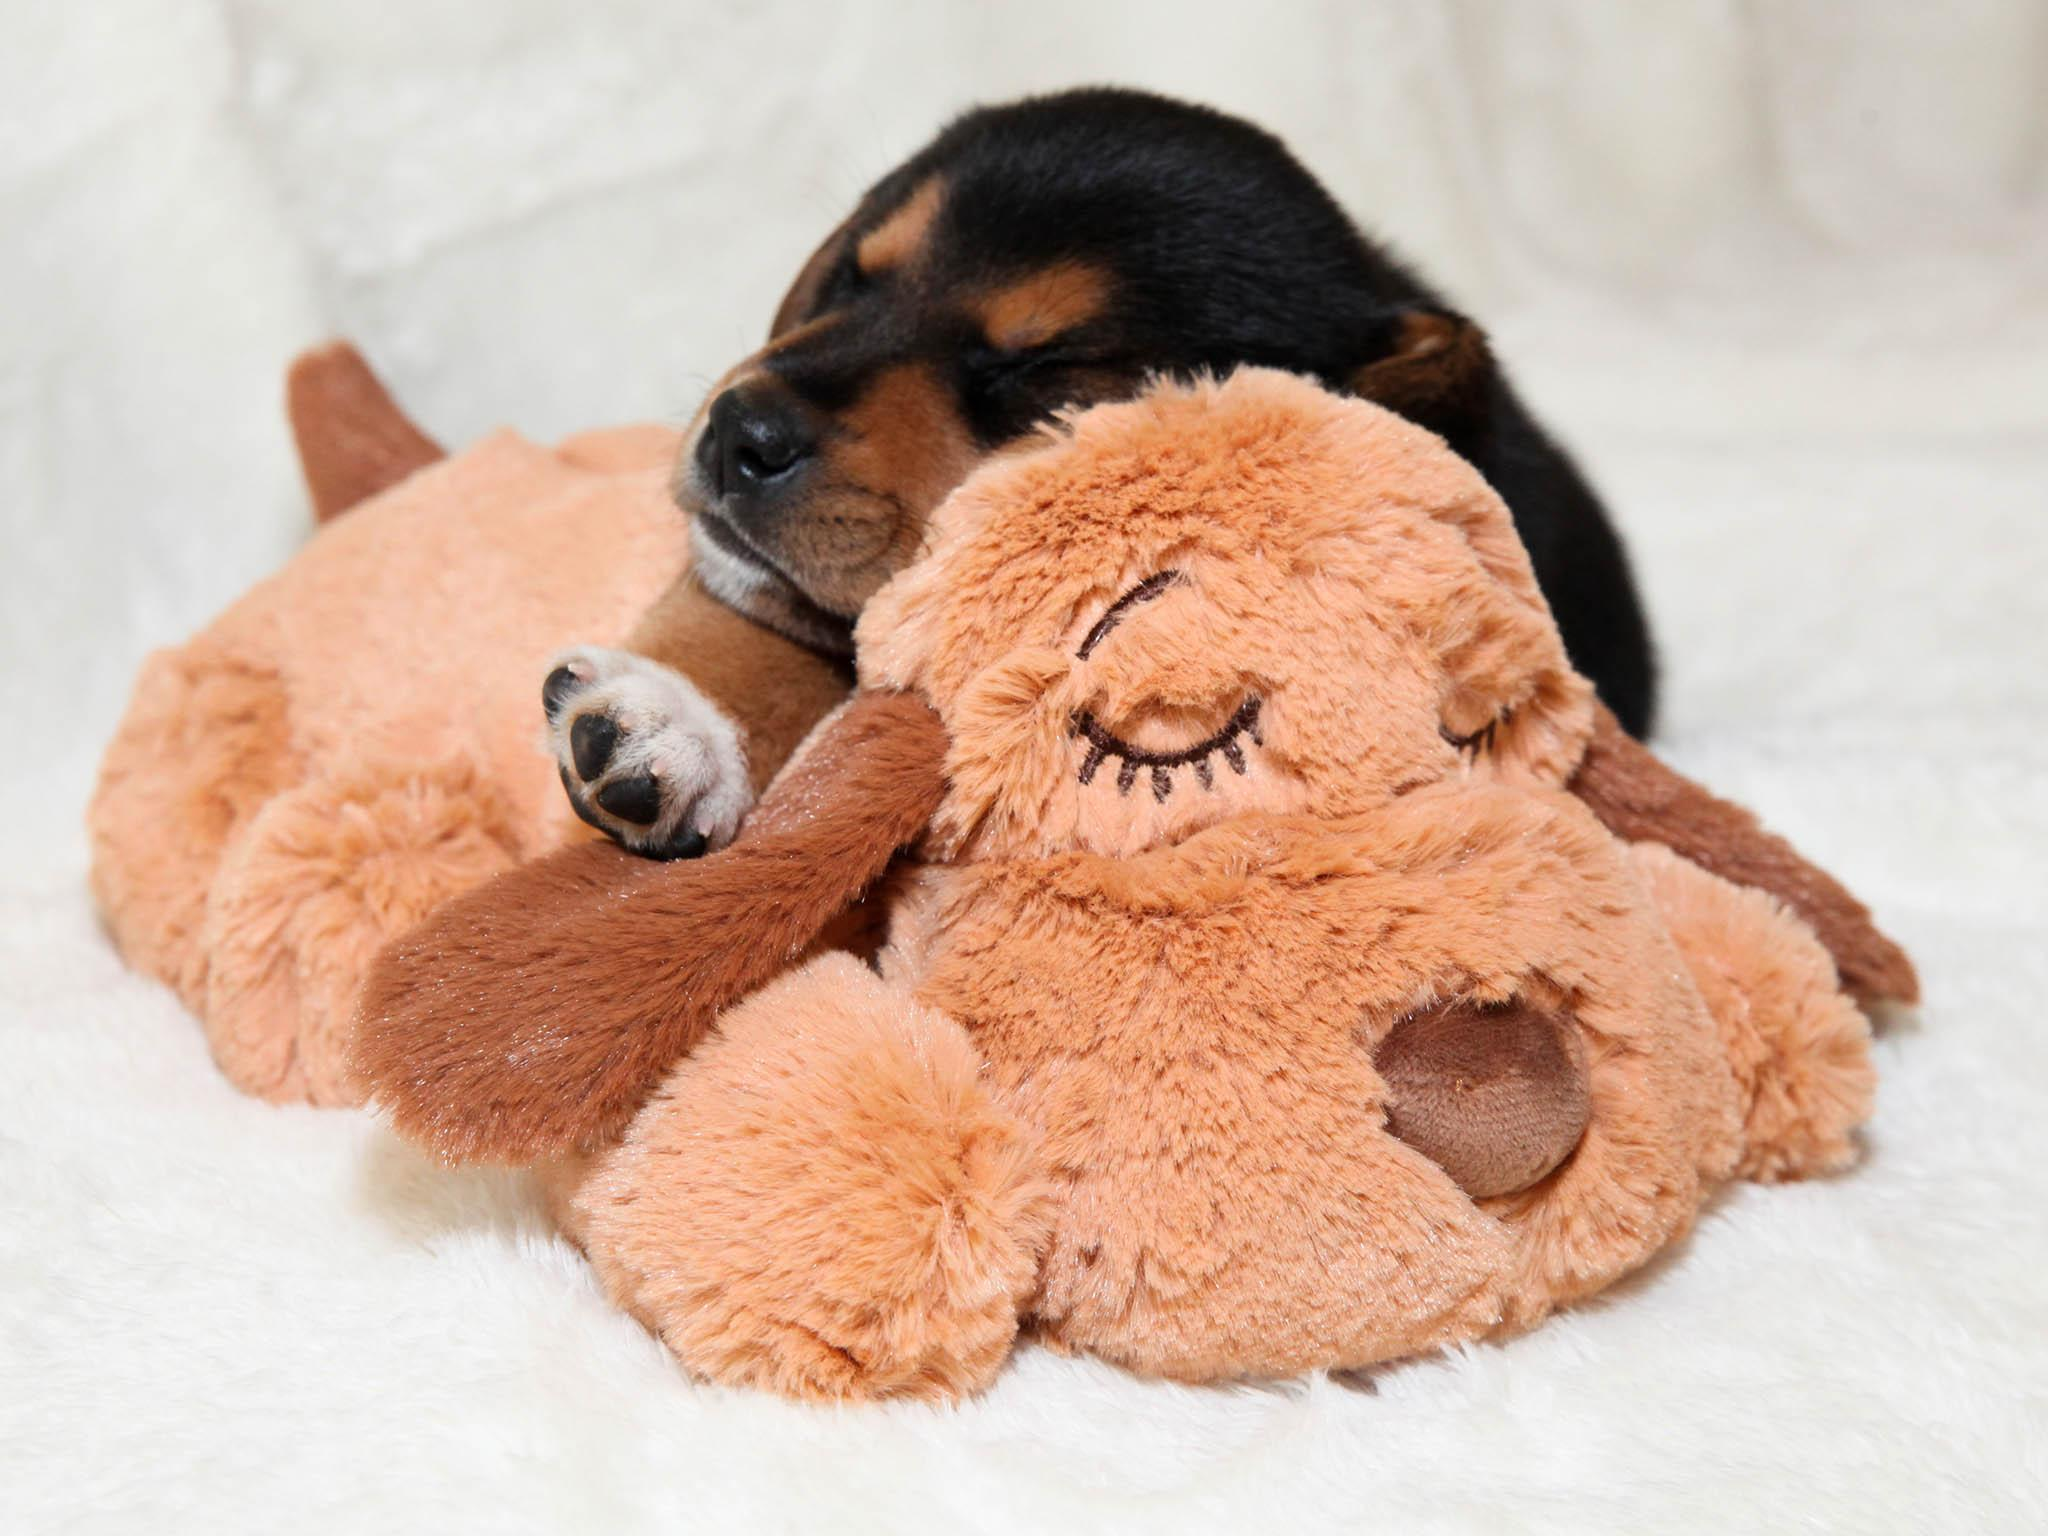 10 best dog toys | The Independent